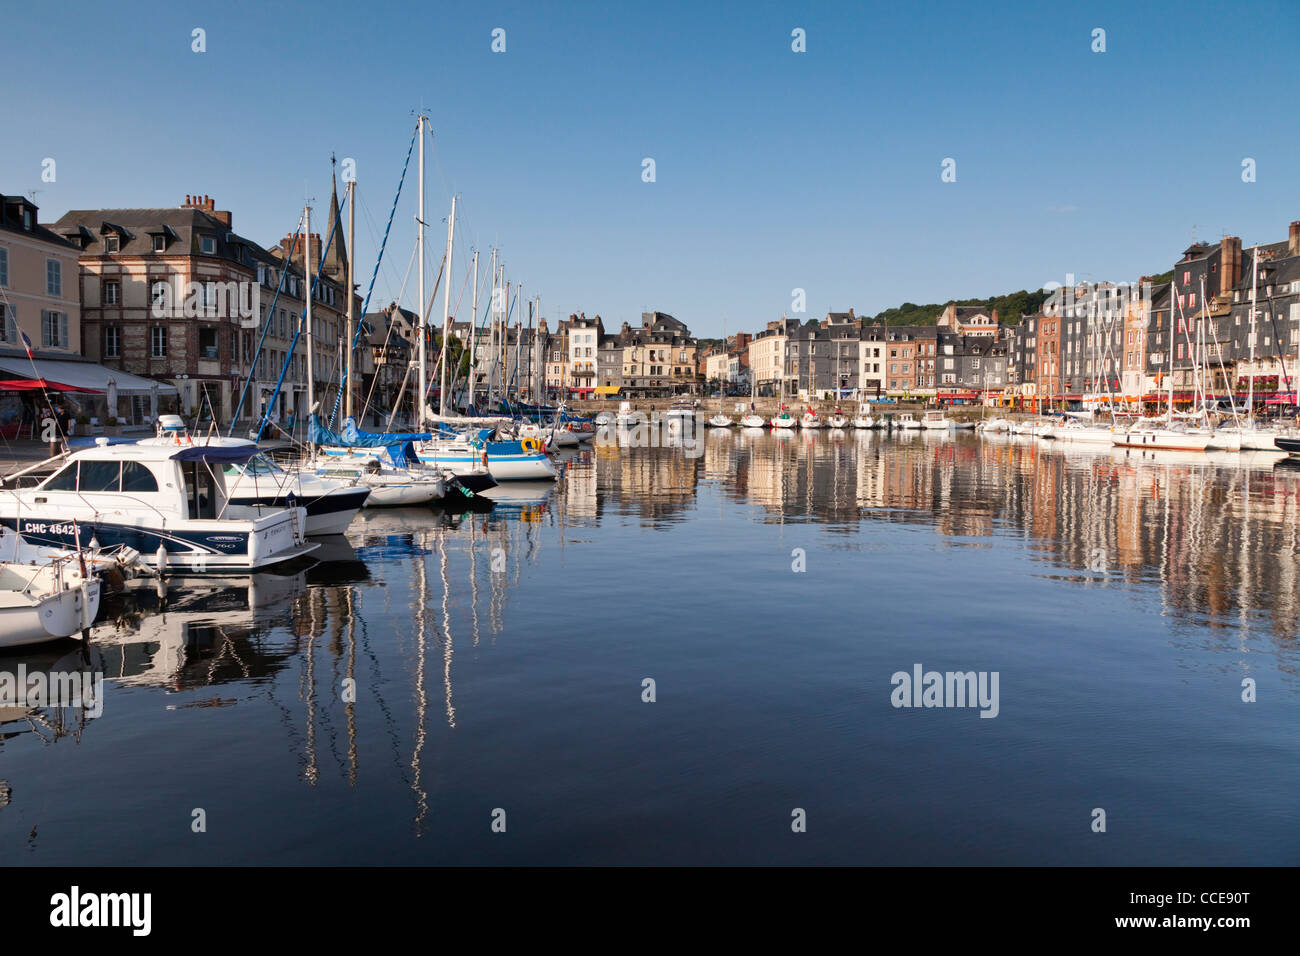 Sailing and power boats line the old harbour basin of Honfleur in Normandy, France. - Stock Image